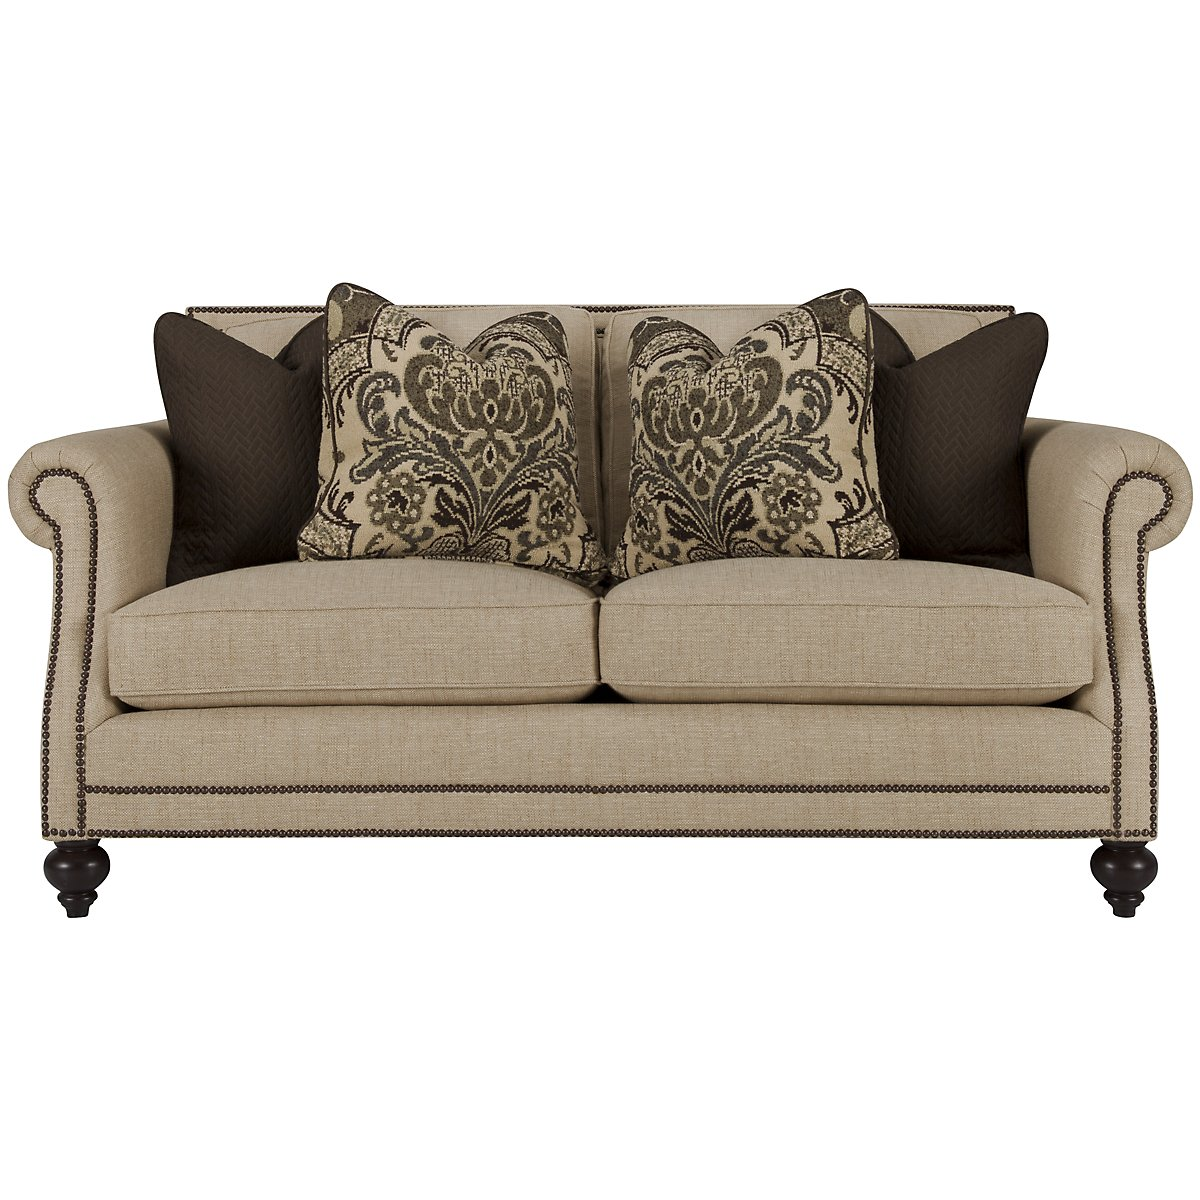 Brae Beige Fabric Loveseat